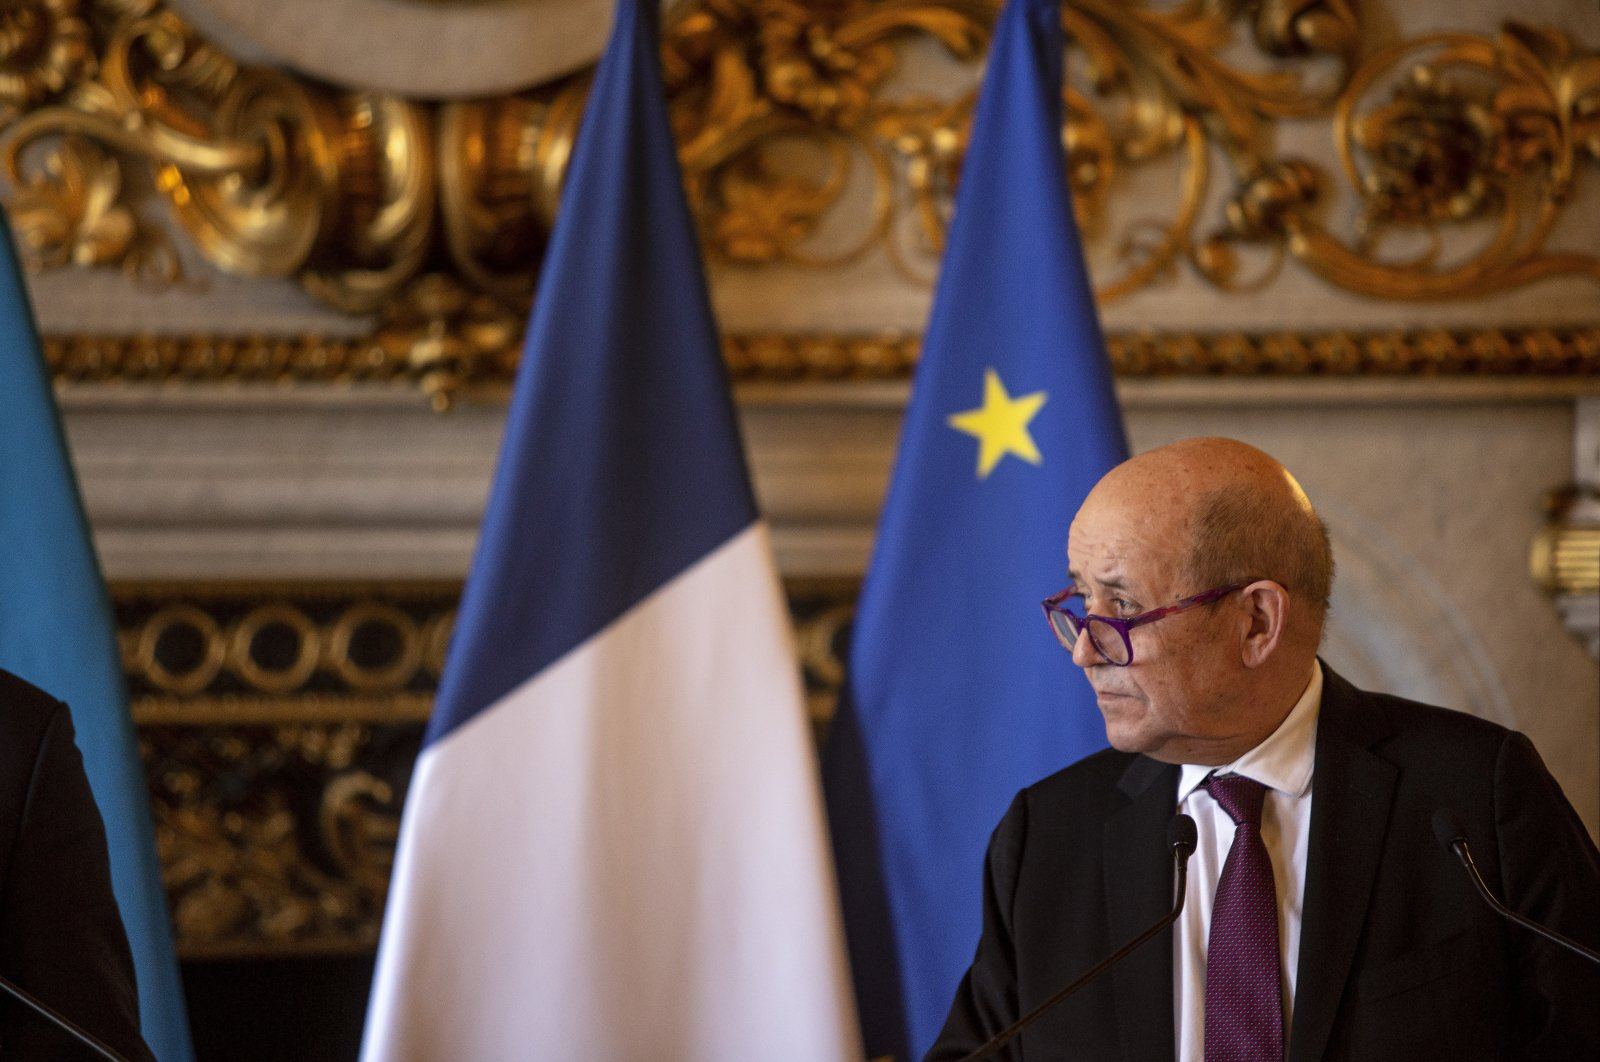 French Foreign Affairs Minister Jean-Yves Le Drian attends a news conference with his Ukrainian counterpart Dmytro Kuleba, at the Quai d'Orsay, in Paris, France, Friday, Feb. 26, 2021. (AP Photo)